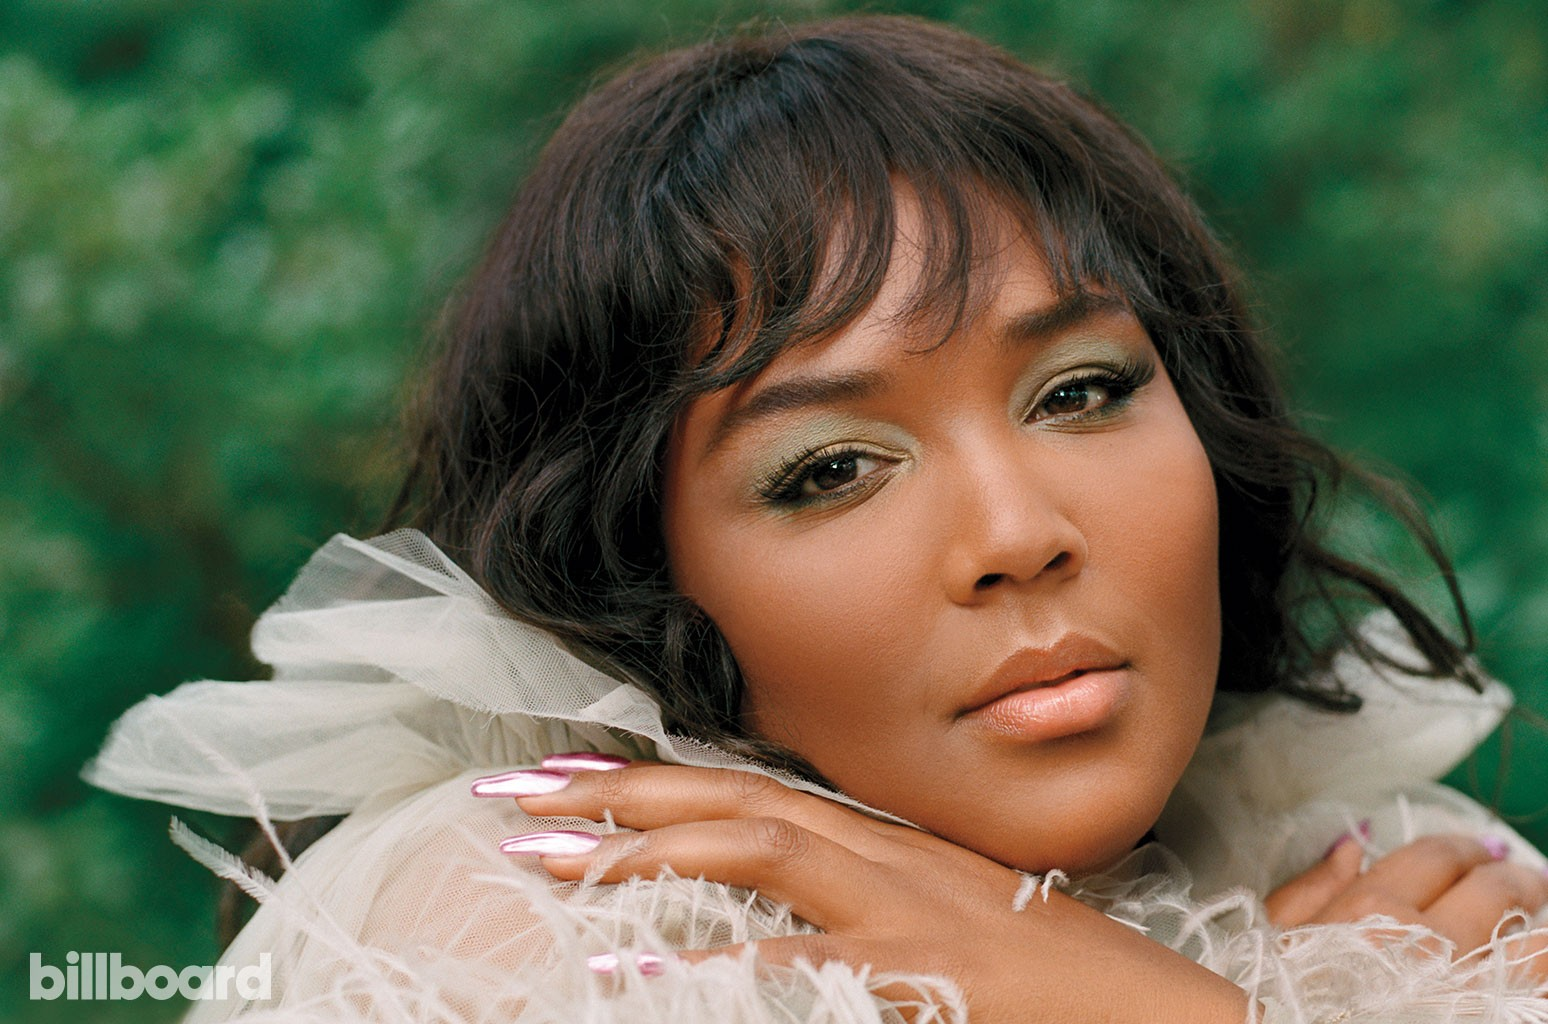 HOW TO Get Sleek & Sassy Strands Like Lizzo, According to Her Hairstylist